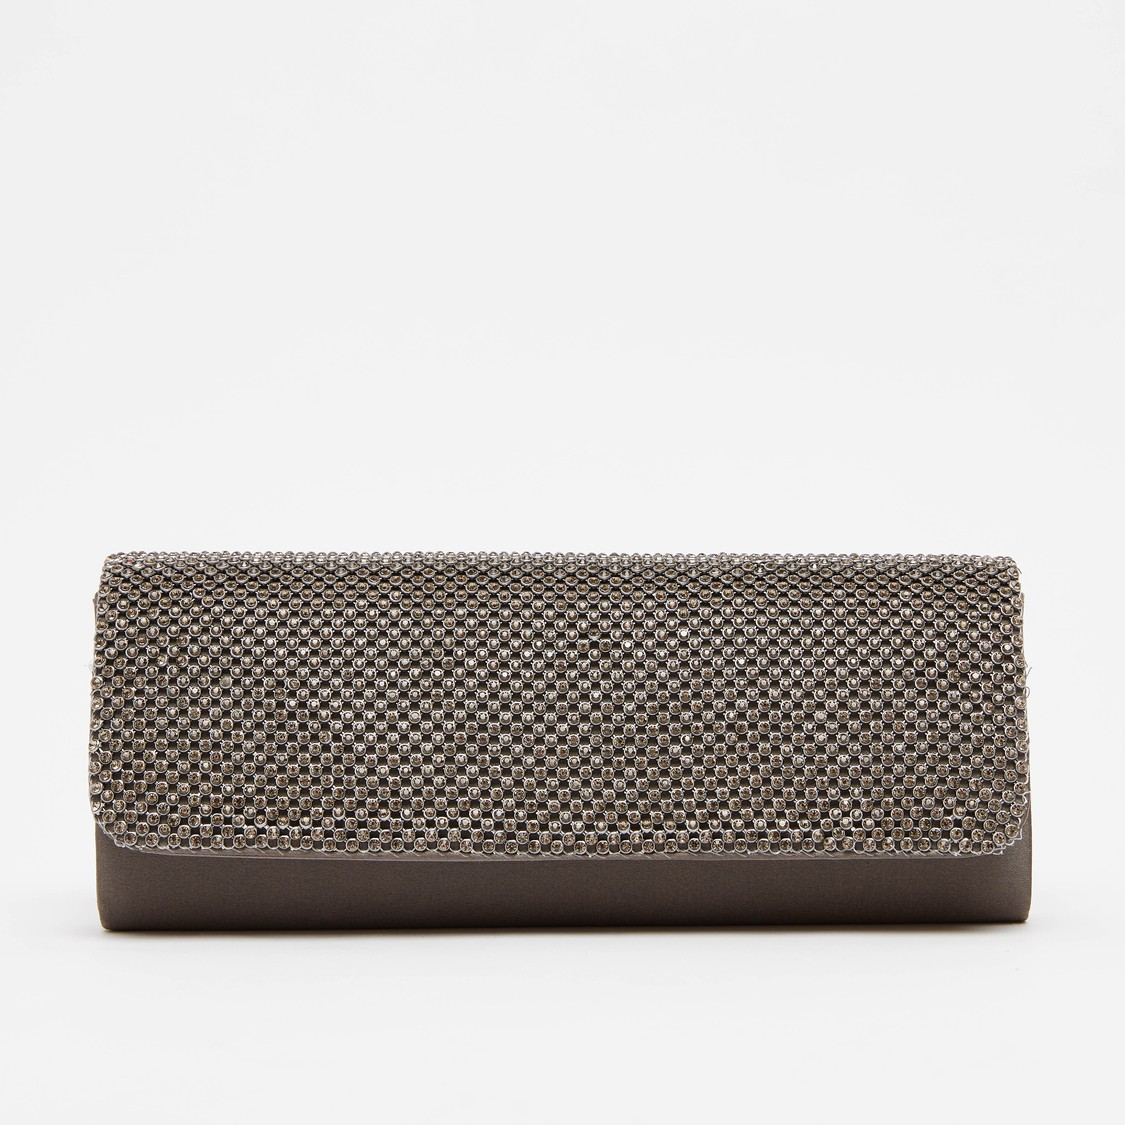 Studded Clutch with Magnetic Snap Closure and Metallic Chain